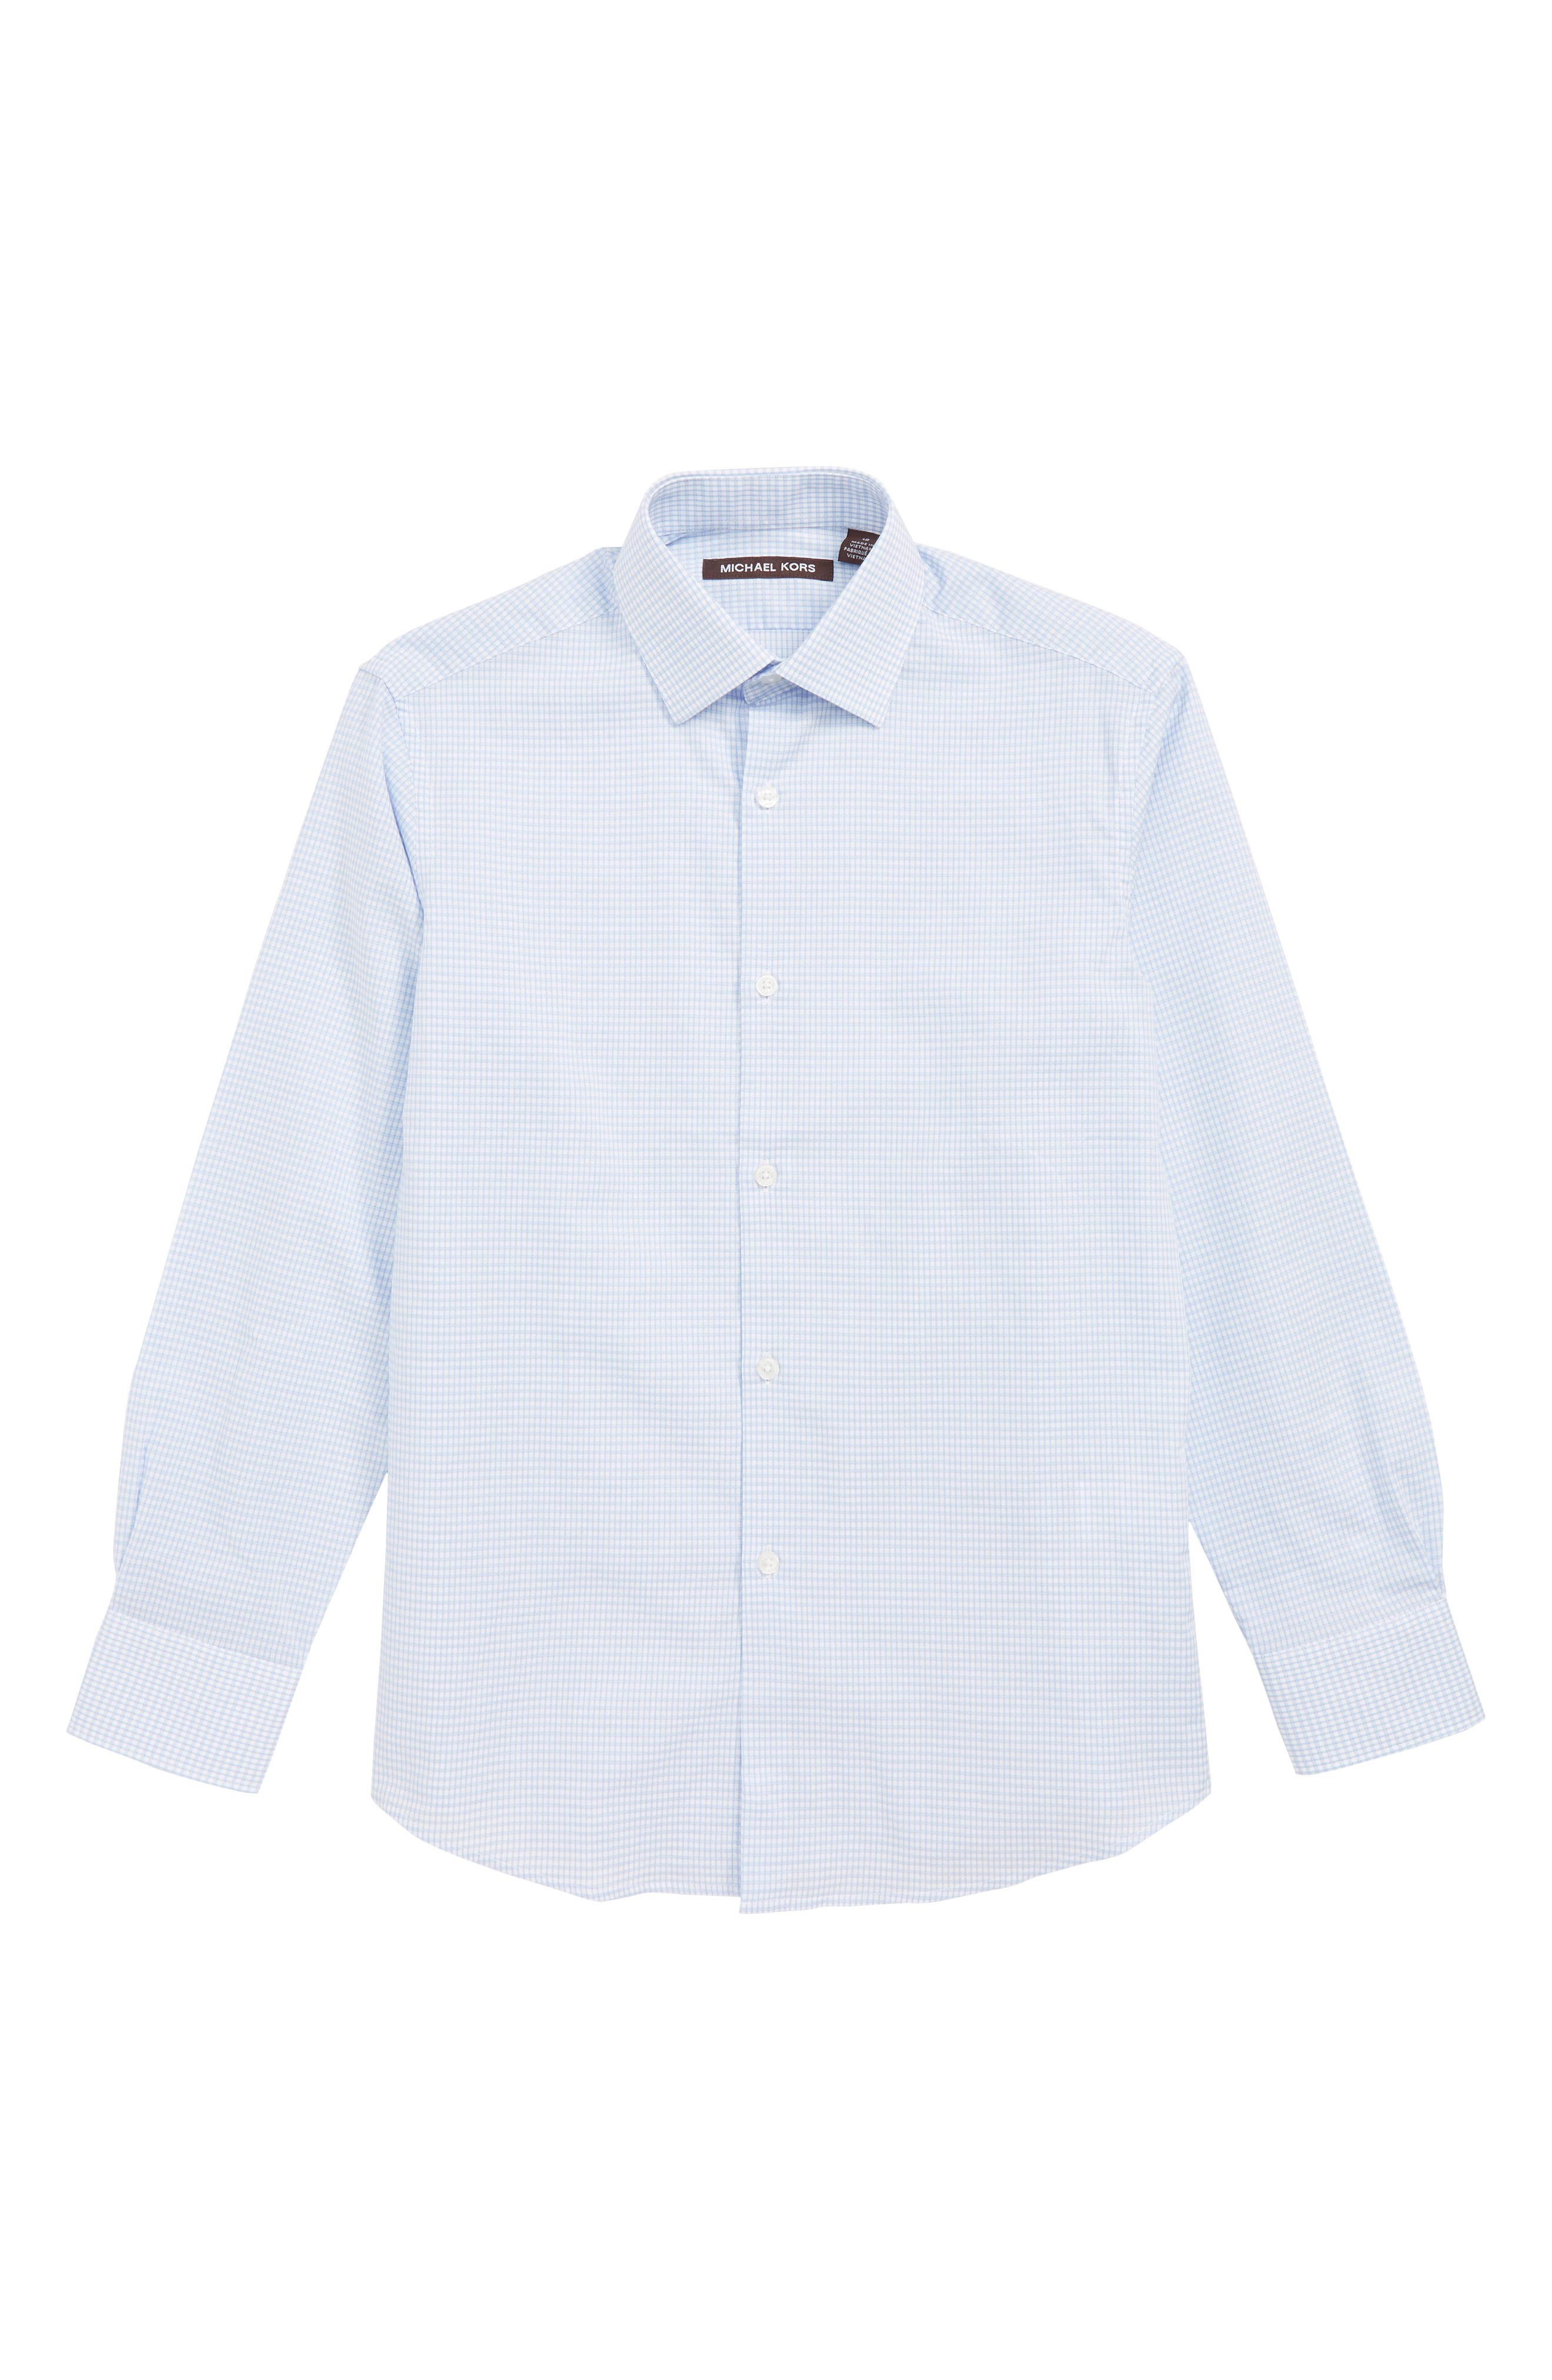 MICHAEL KORS,                             Check Dress Shirt,                             Main thumbnail 1, color,                             LIGHT BLUE